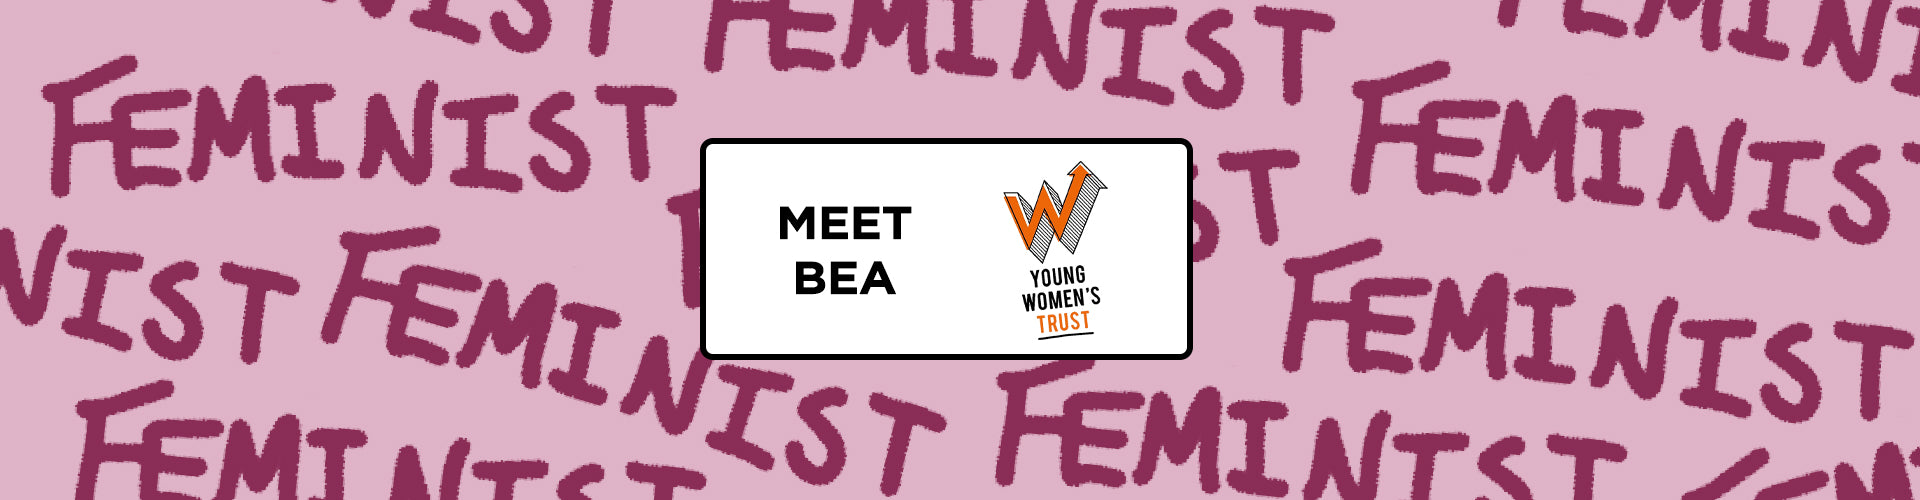 Meet Bea - Advisory Panel member for Young Women's Trust